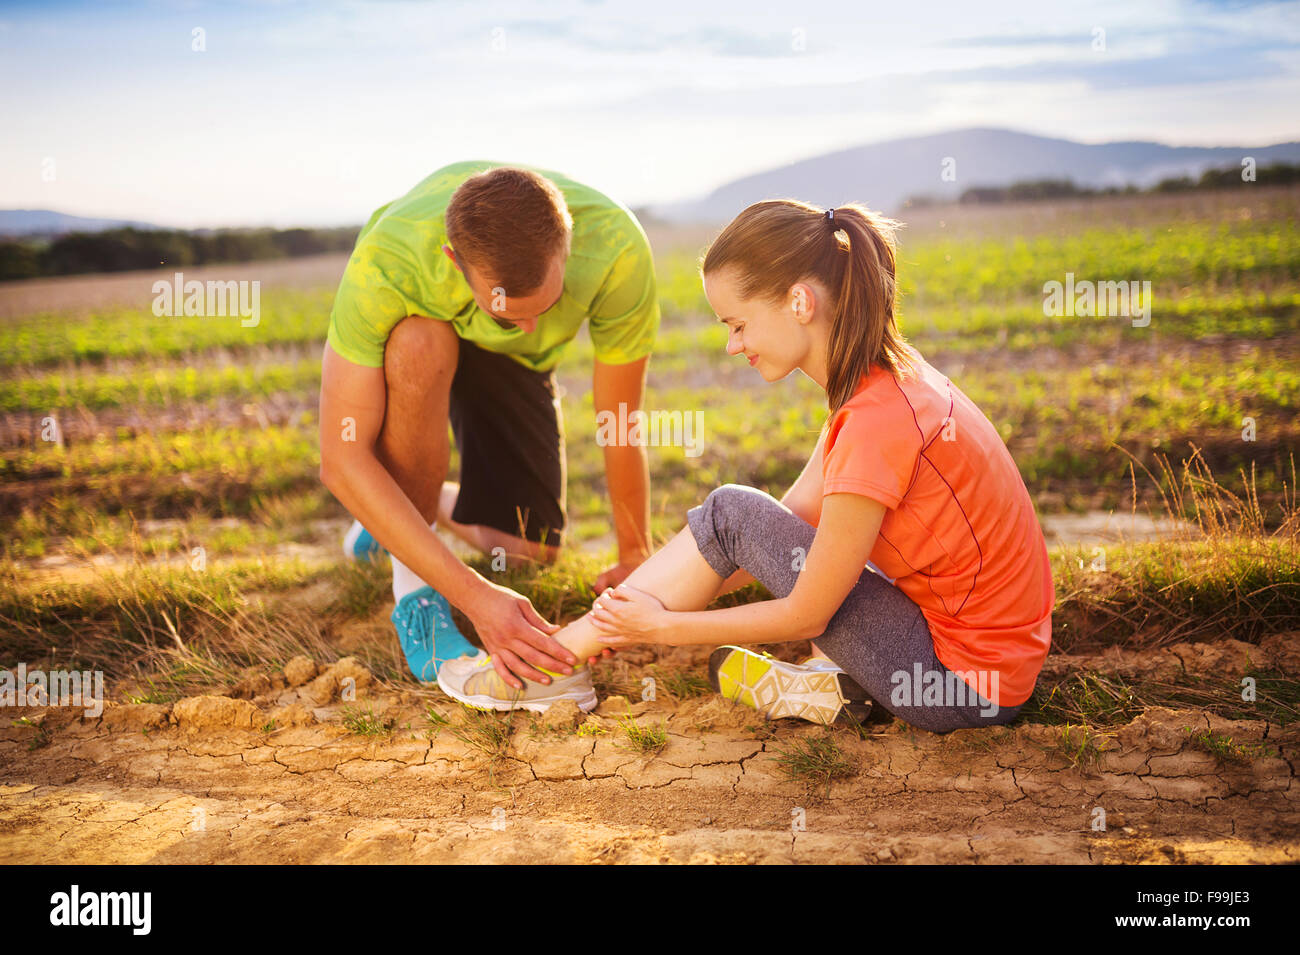 Injury - sports woman with twisted sprained getting help from man touching her ankle. - Stock Image